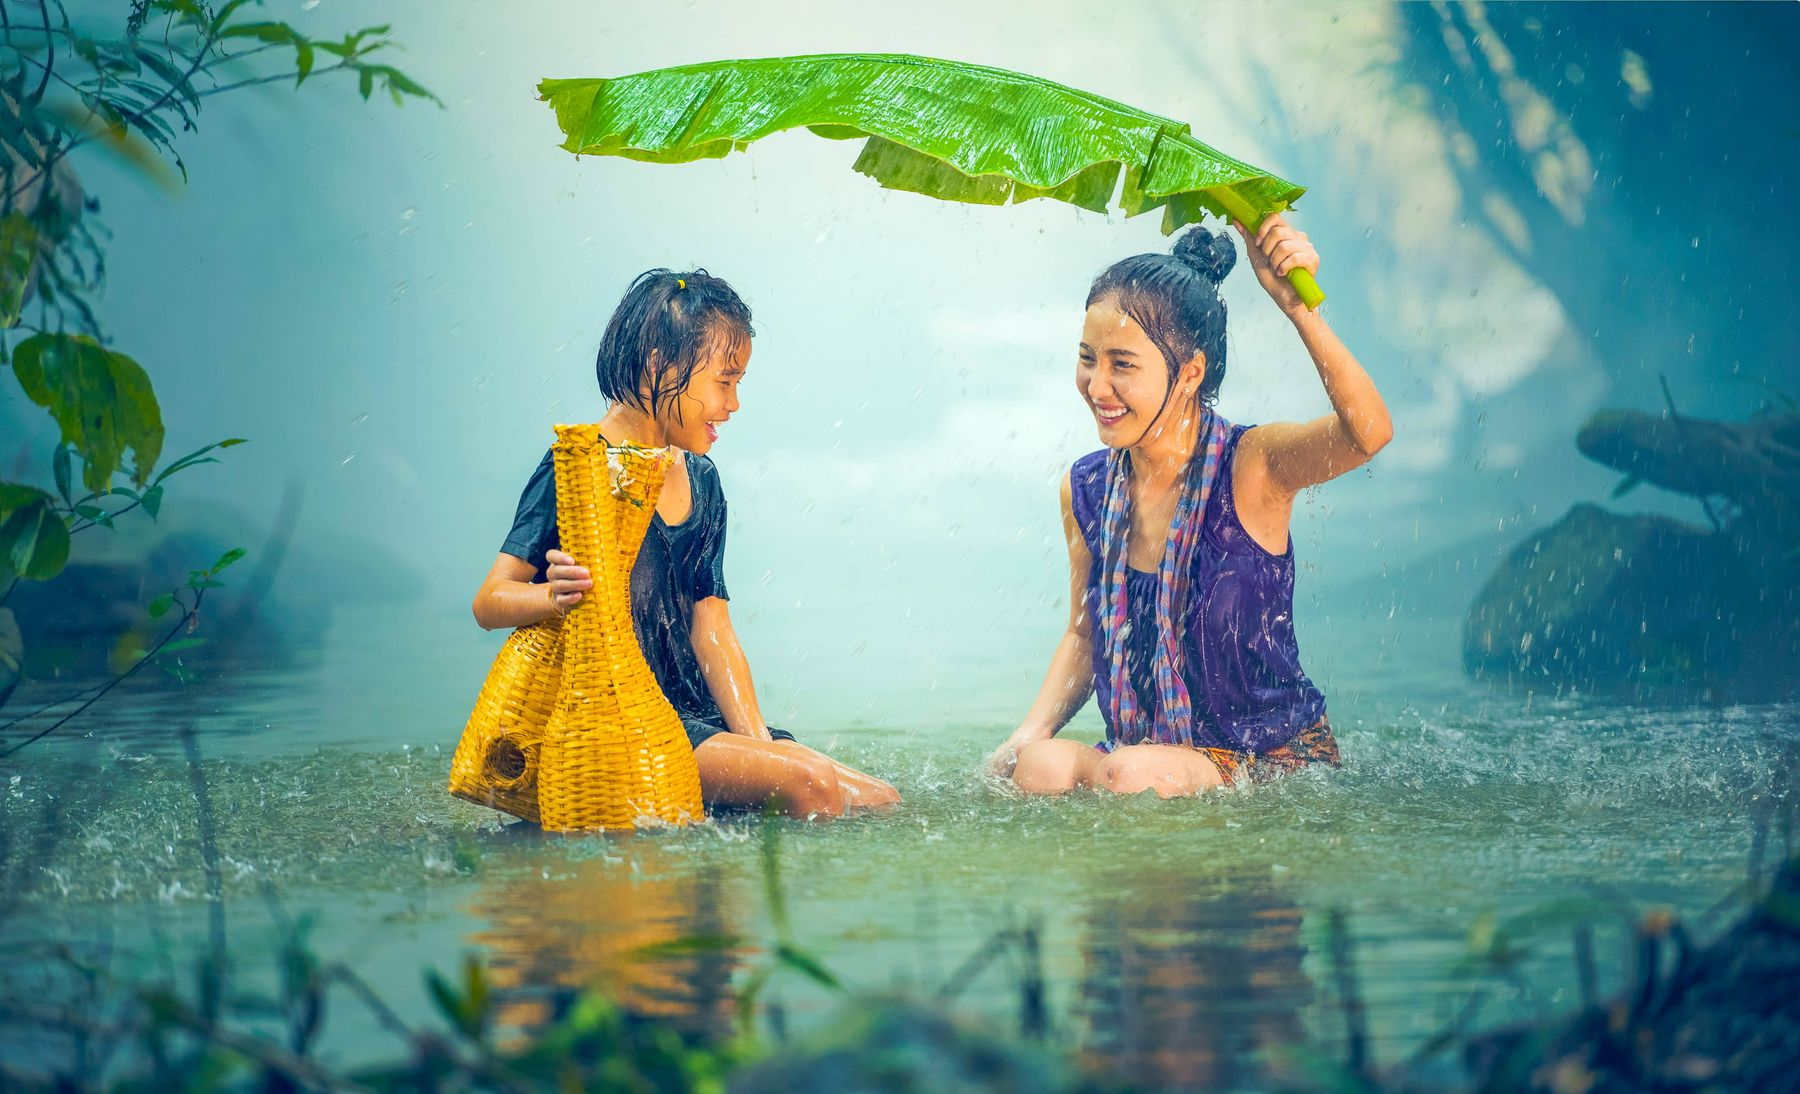 A happy mother holding a banana leaf over her and her child's head to cover them against the rain